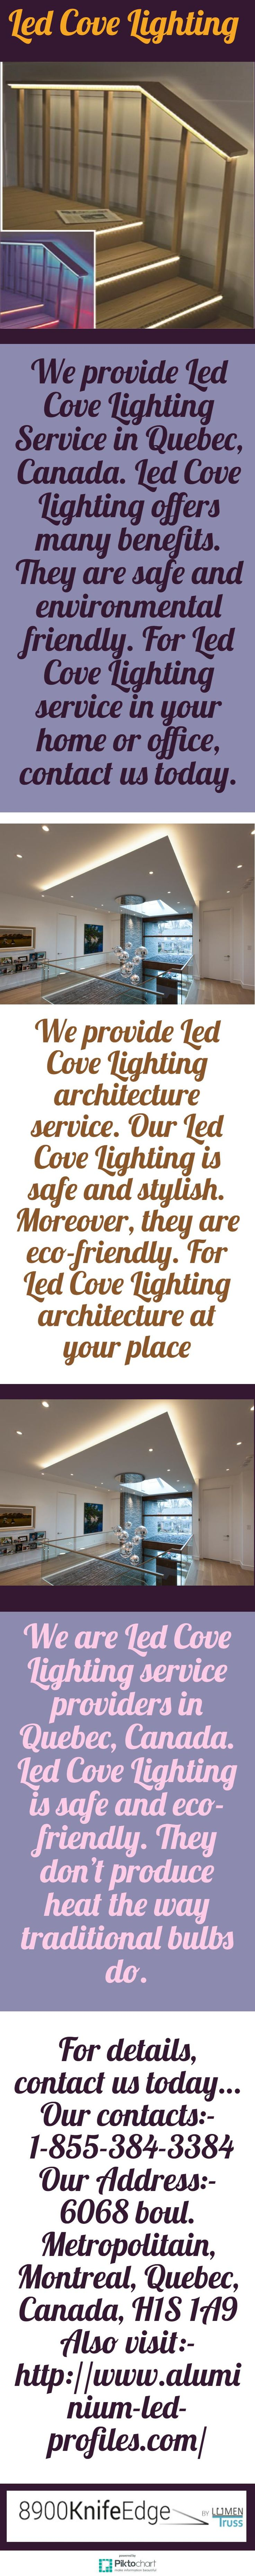 We provide Led Cove Lighting Service in Quebec, Canada. Led Cove Lighting offers many benefits. They are safe and environmental friendly. For Led Cove Lighting service in your home or office, contact us today. Also visit:  http://www.aluminium-led-profiles.com/